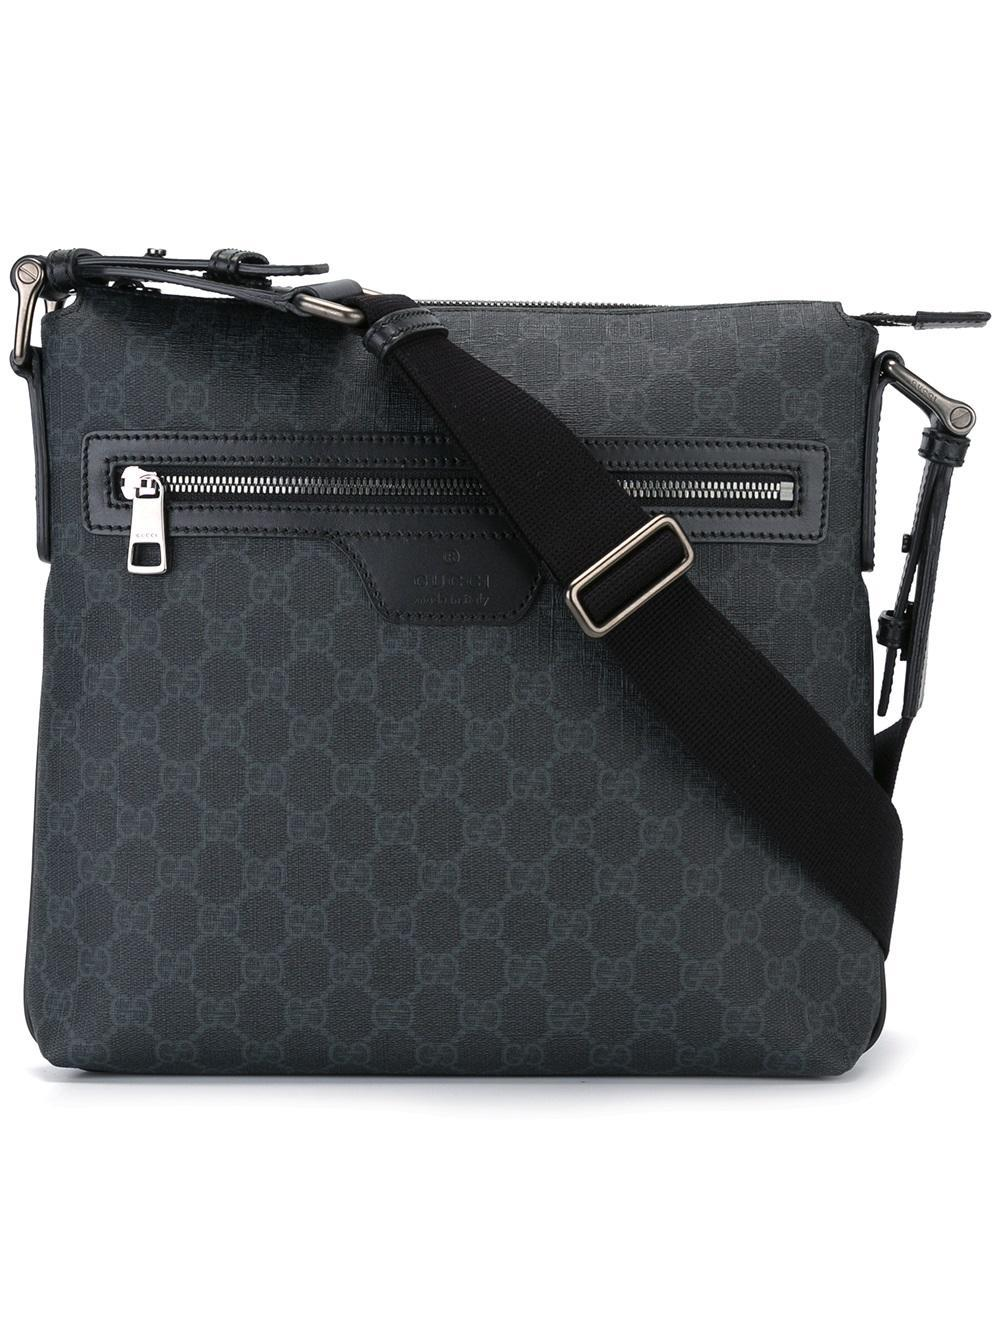 cheaper run shoes new products Gg Supreme Messenger Bag